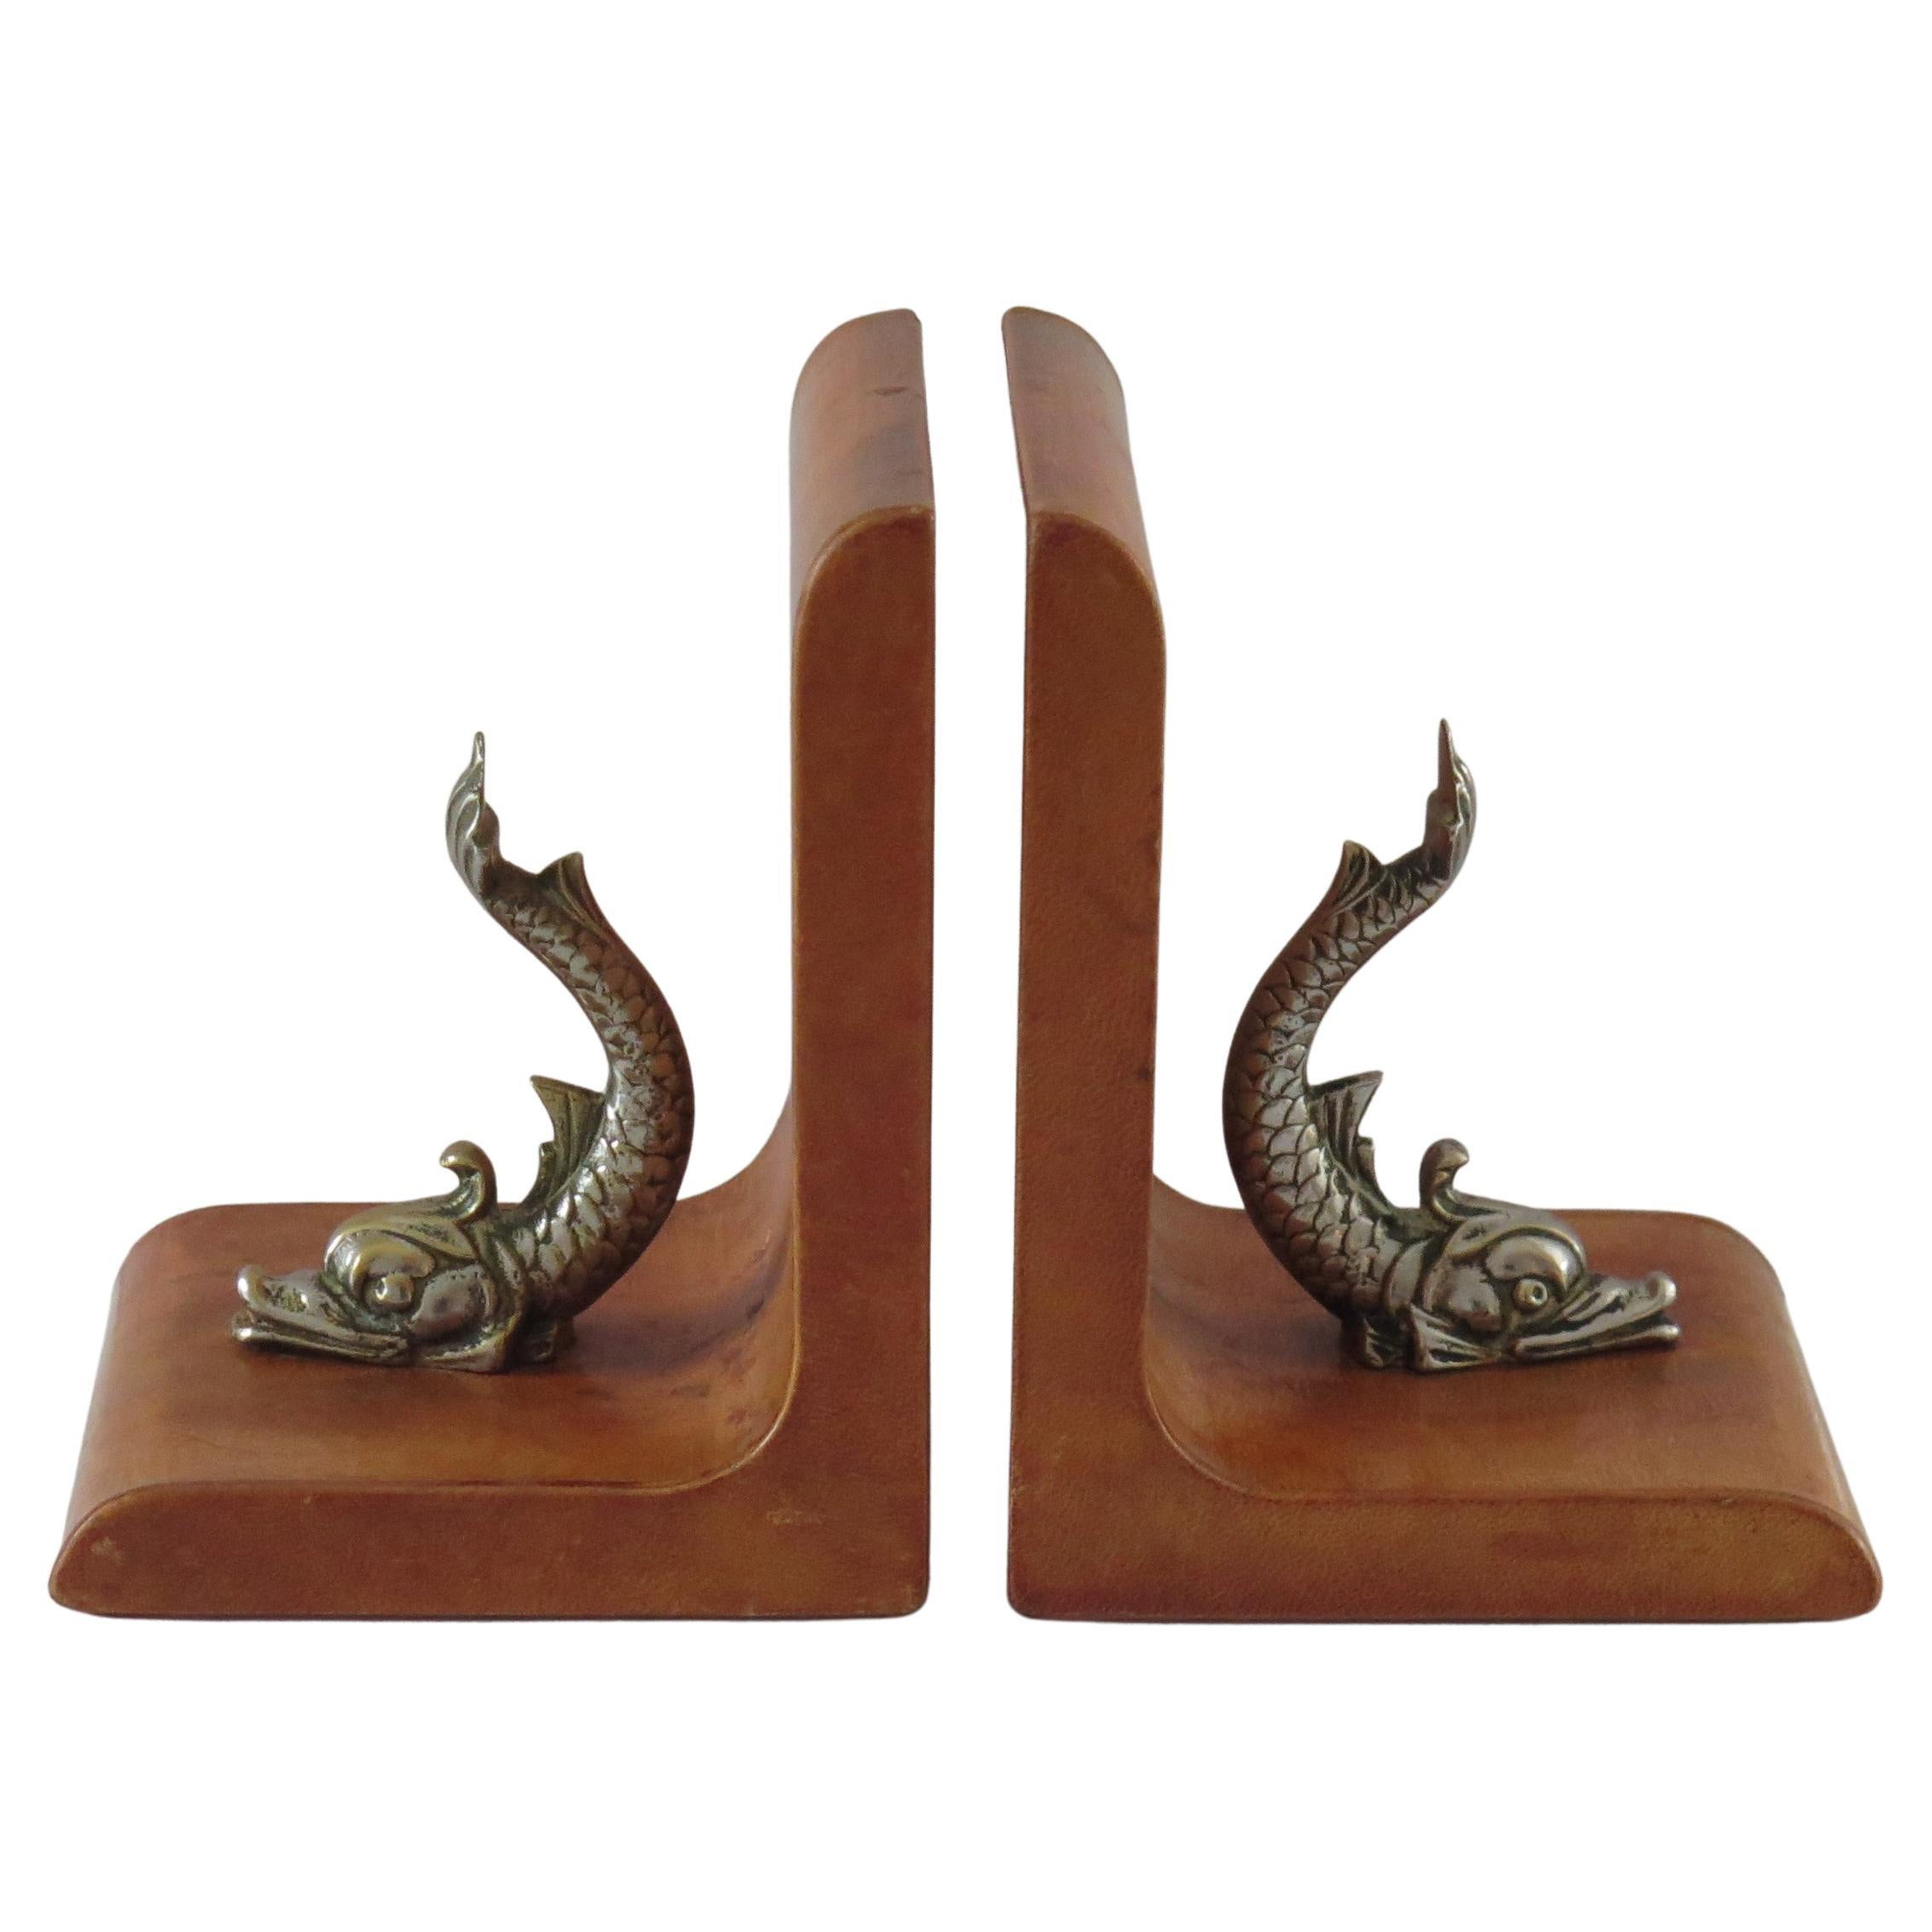 Tan Leather Bookends Mounted with Gilt Bronzed Dolphins, Italian circa 1940